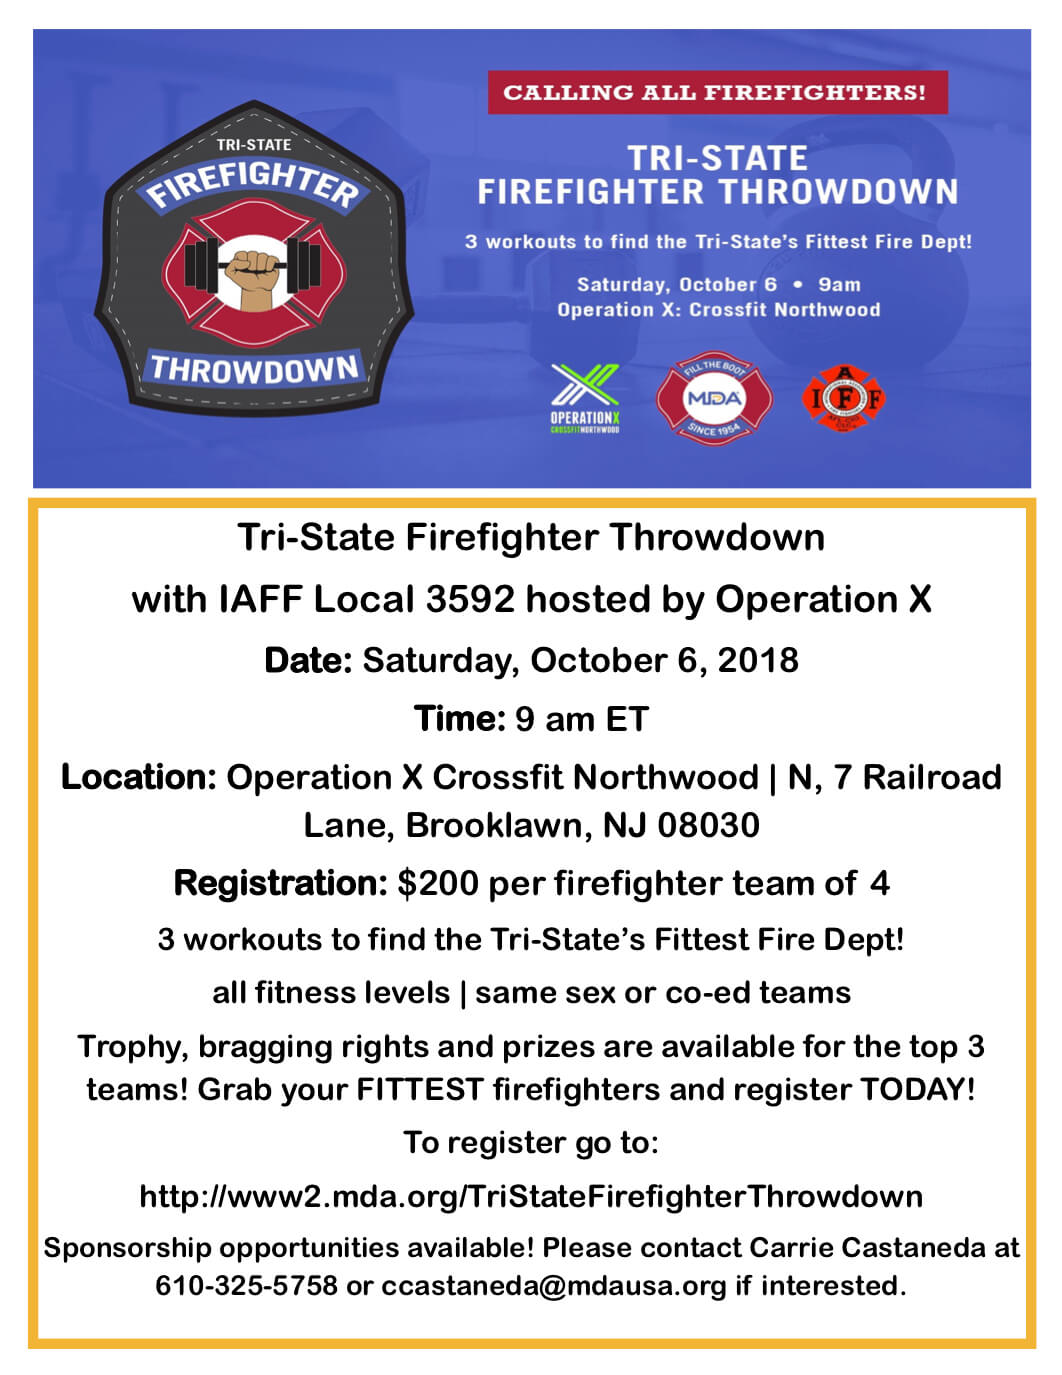 Firefighter Throwdown Flyer